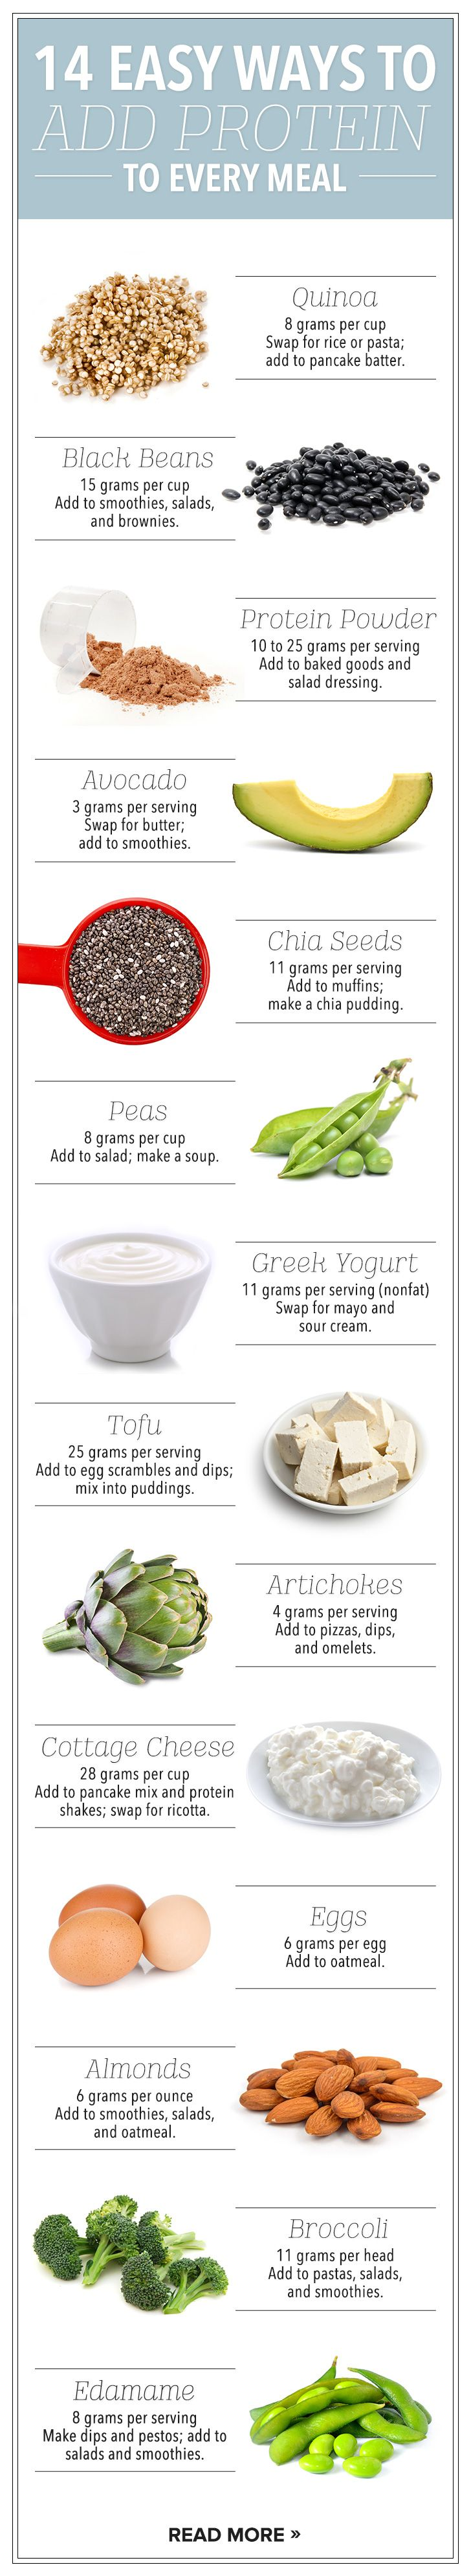 14-ways-to-add-protein-to-your-meal